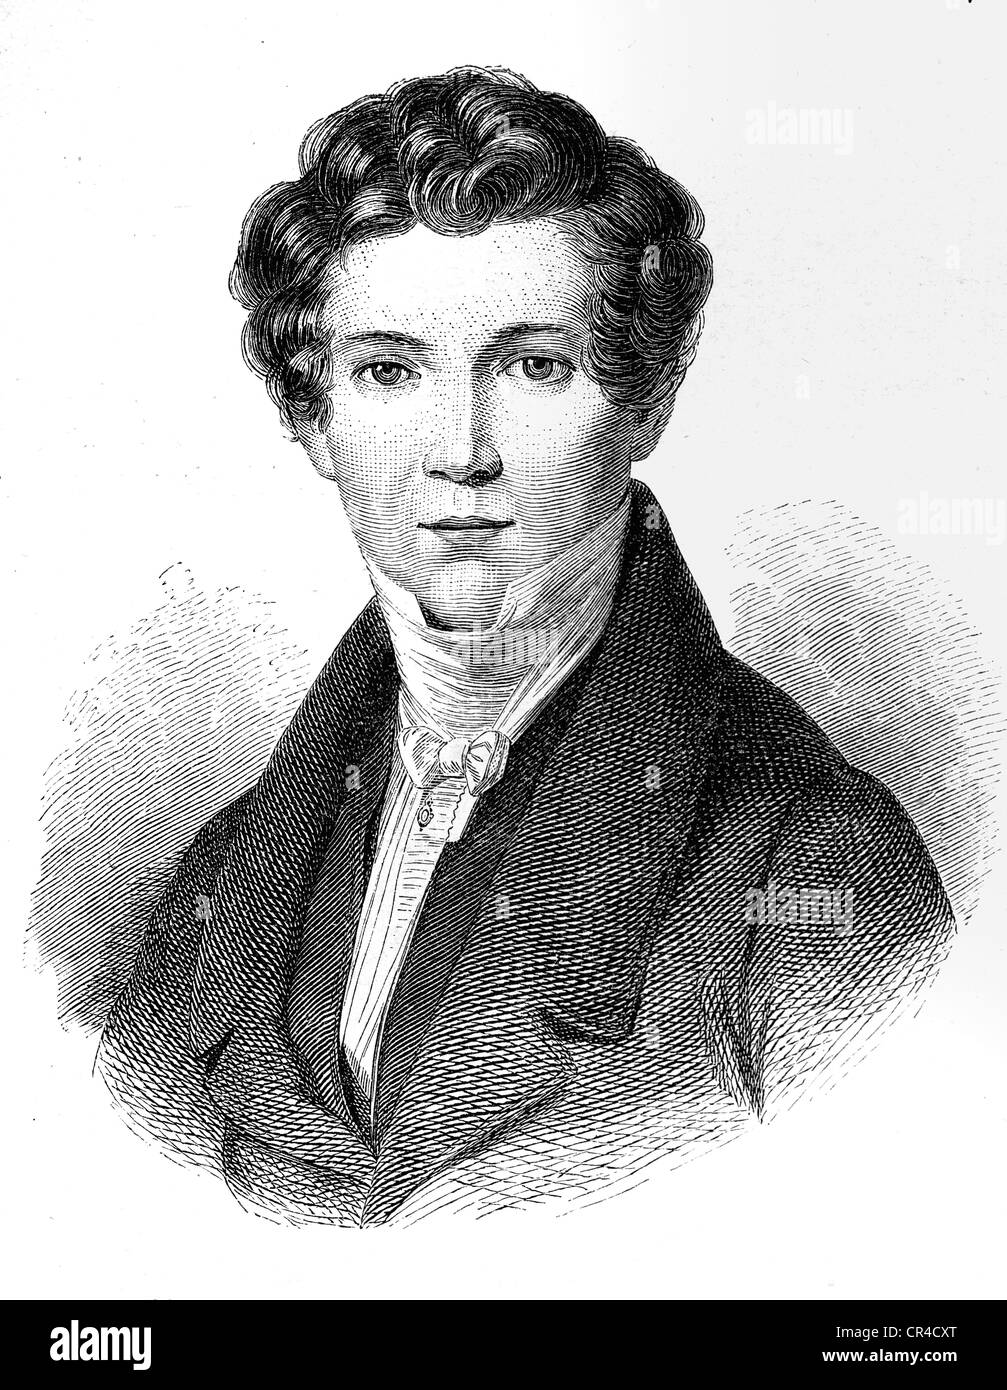 Wilhelm Hauff (1802 - 1827), writer, steel engraving after an oil picture by J.M. Holder - Stock Image